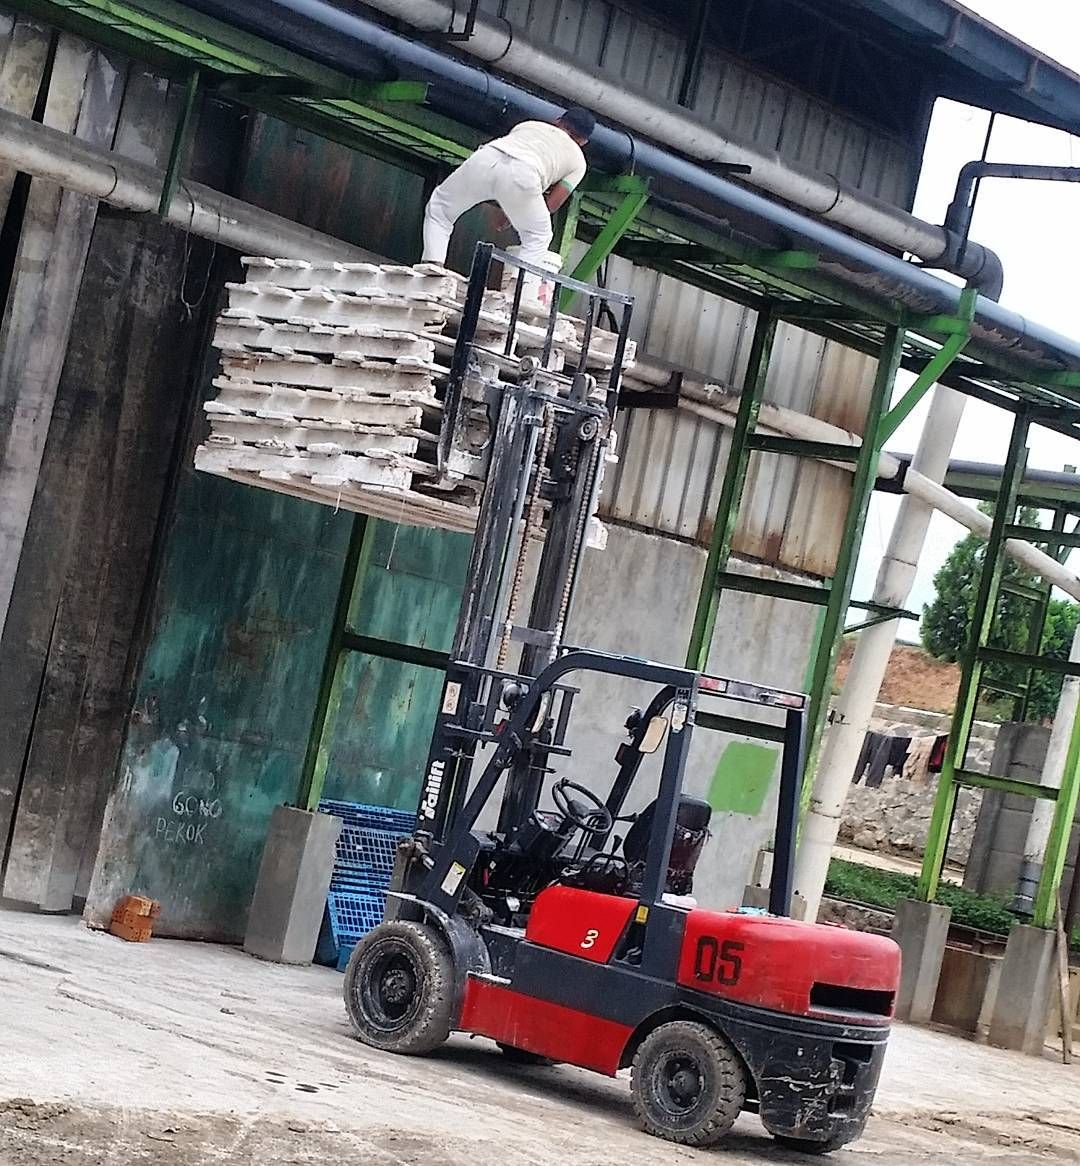 #Forklift safety? Only when it doesn't get in the way.